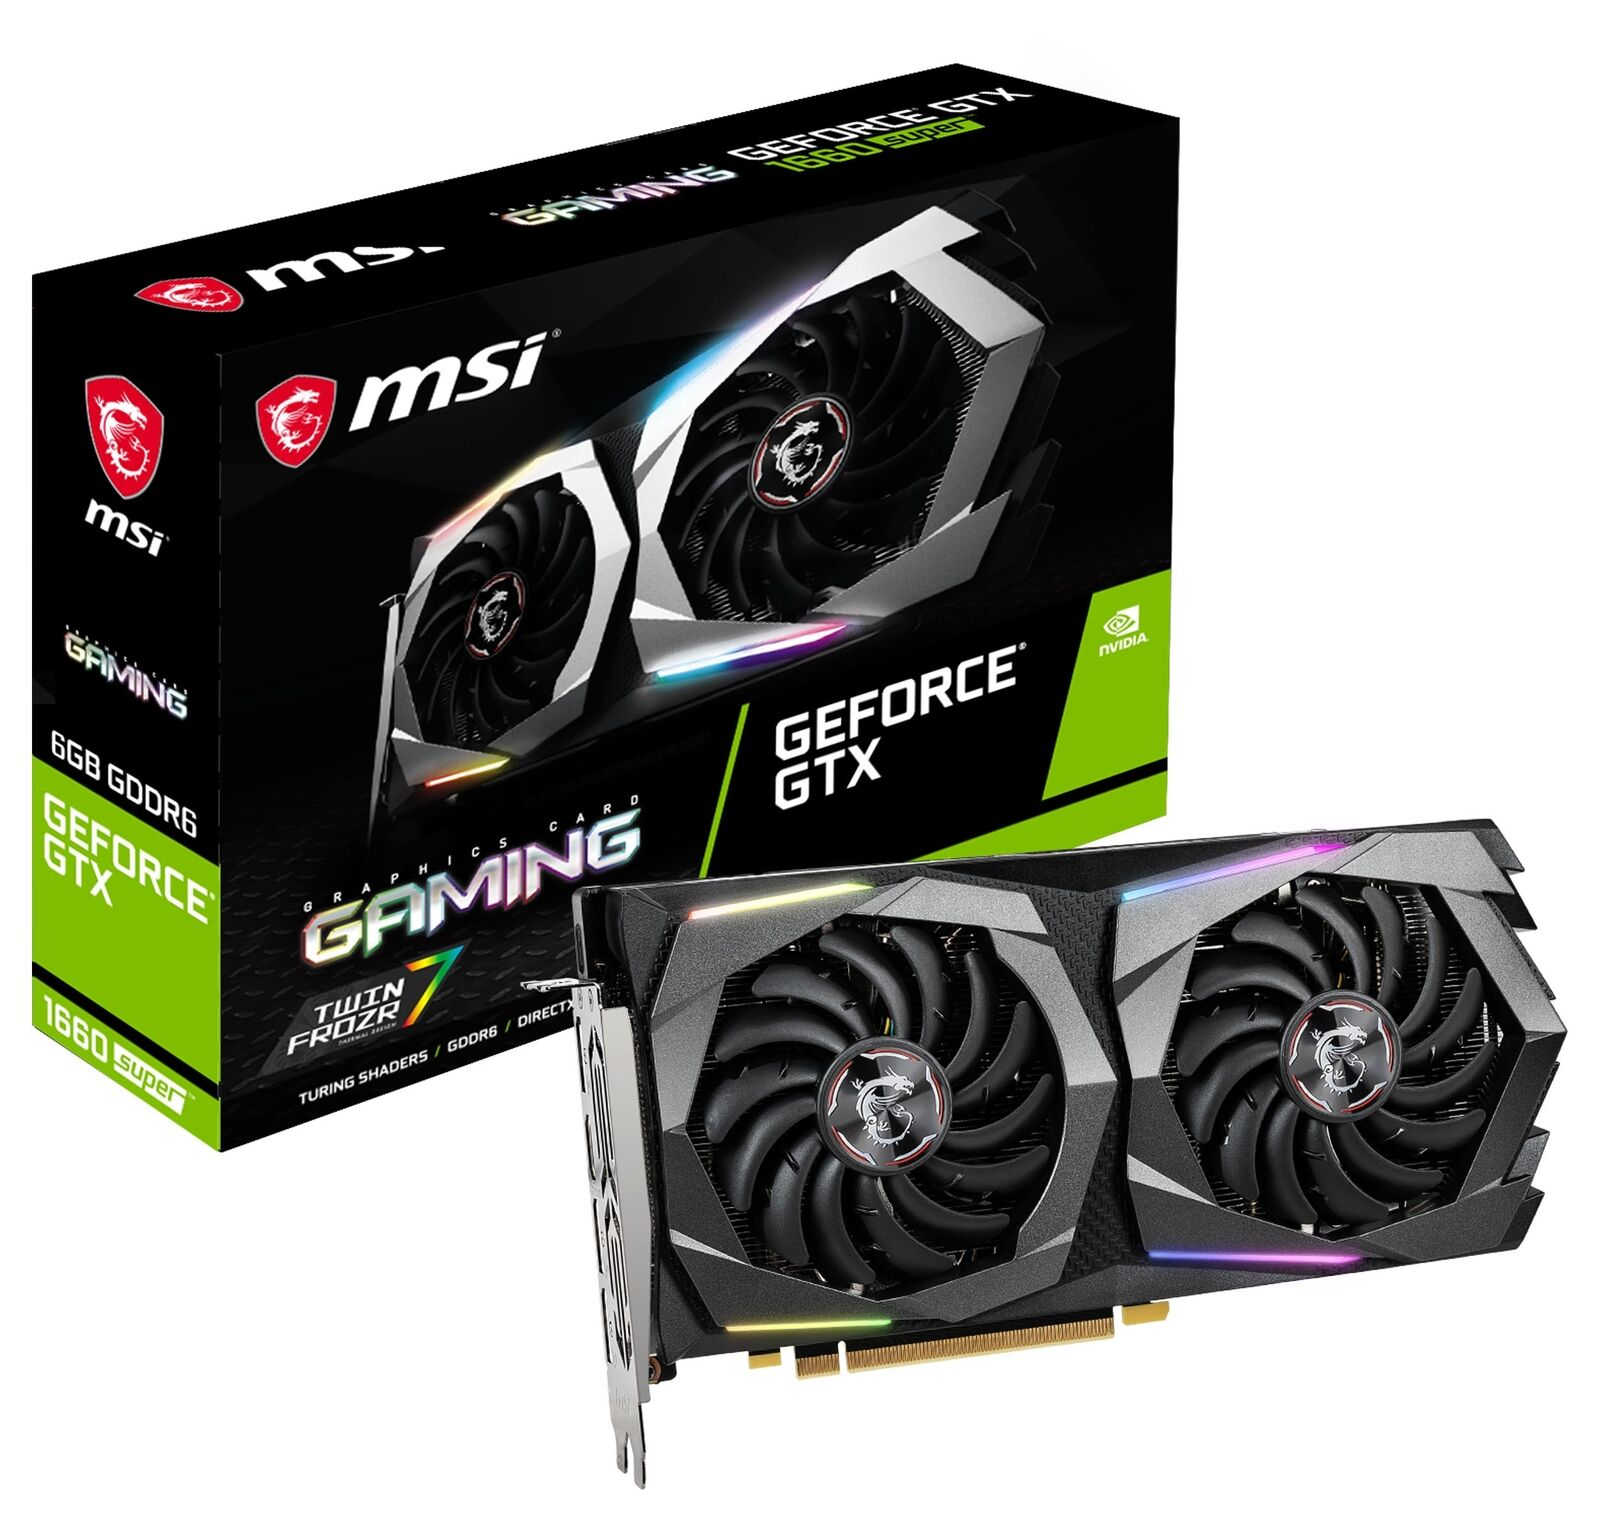 MSI GeForce GTX 1660 SUPER GAMING Graphics Card, PCI-E x16, No NVLink, VR Ready 2